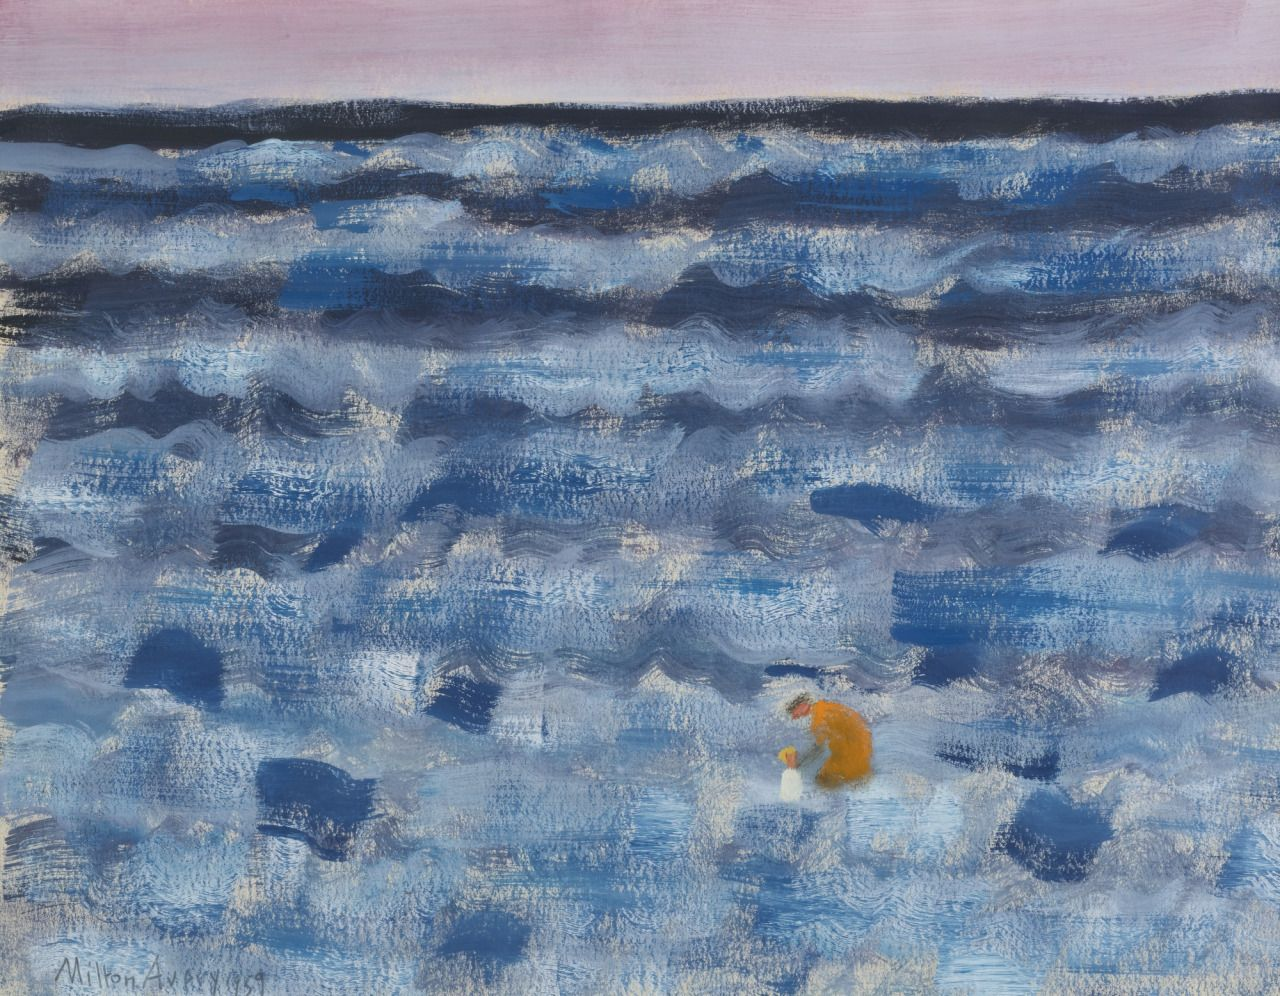 Fairfield Porter Still Life Huariqueje Small Figures In A Big Sea Milton Avery 1959